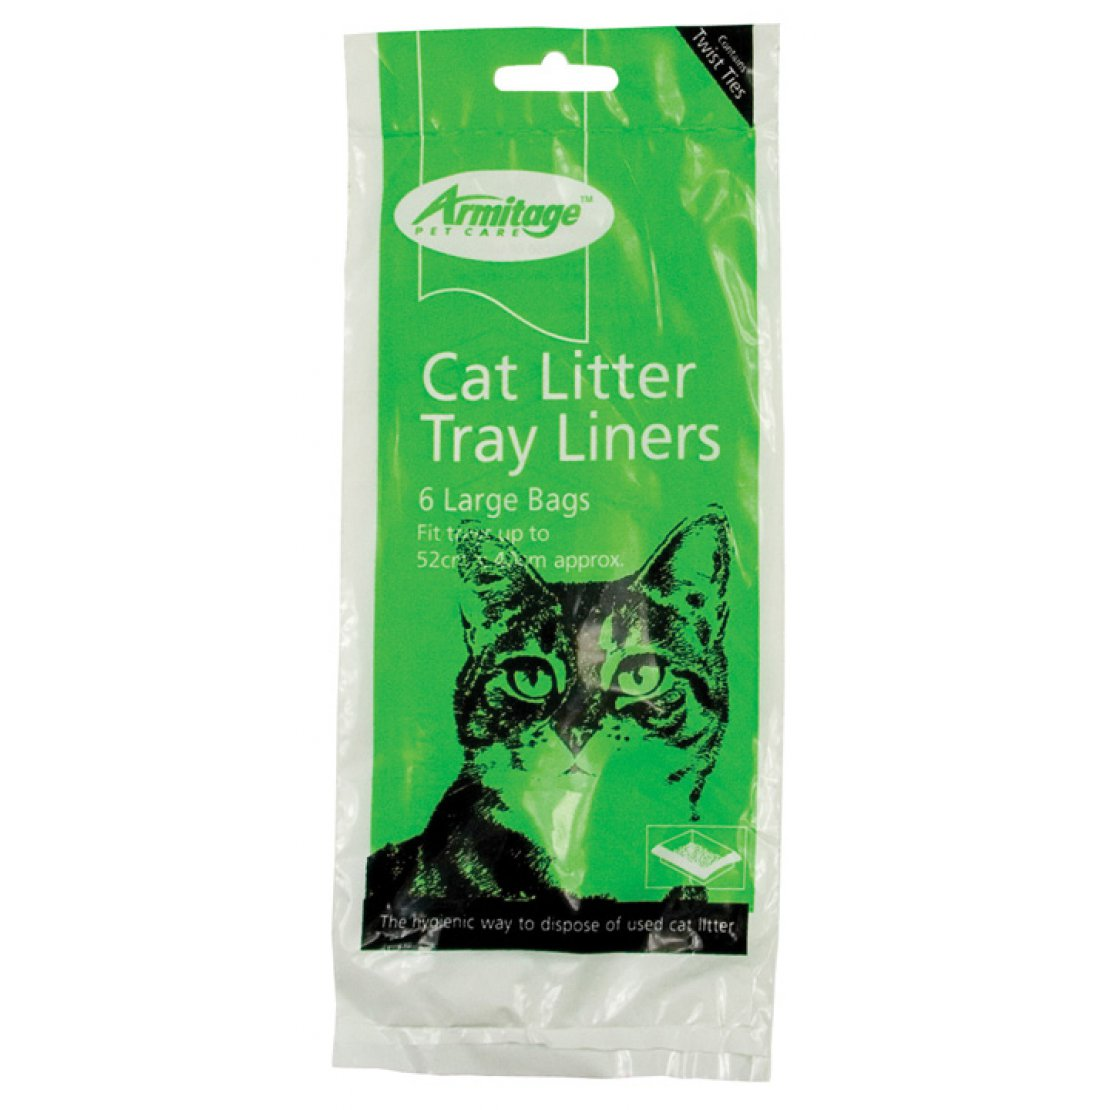 Armitage Litter Tray Liners